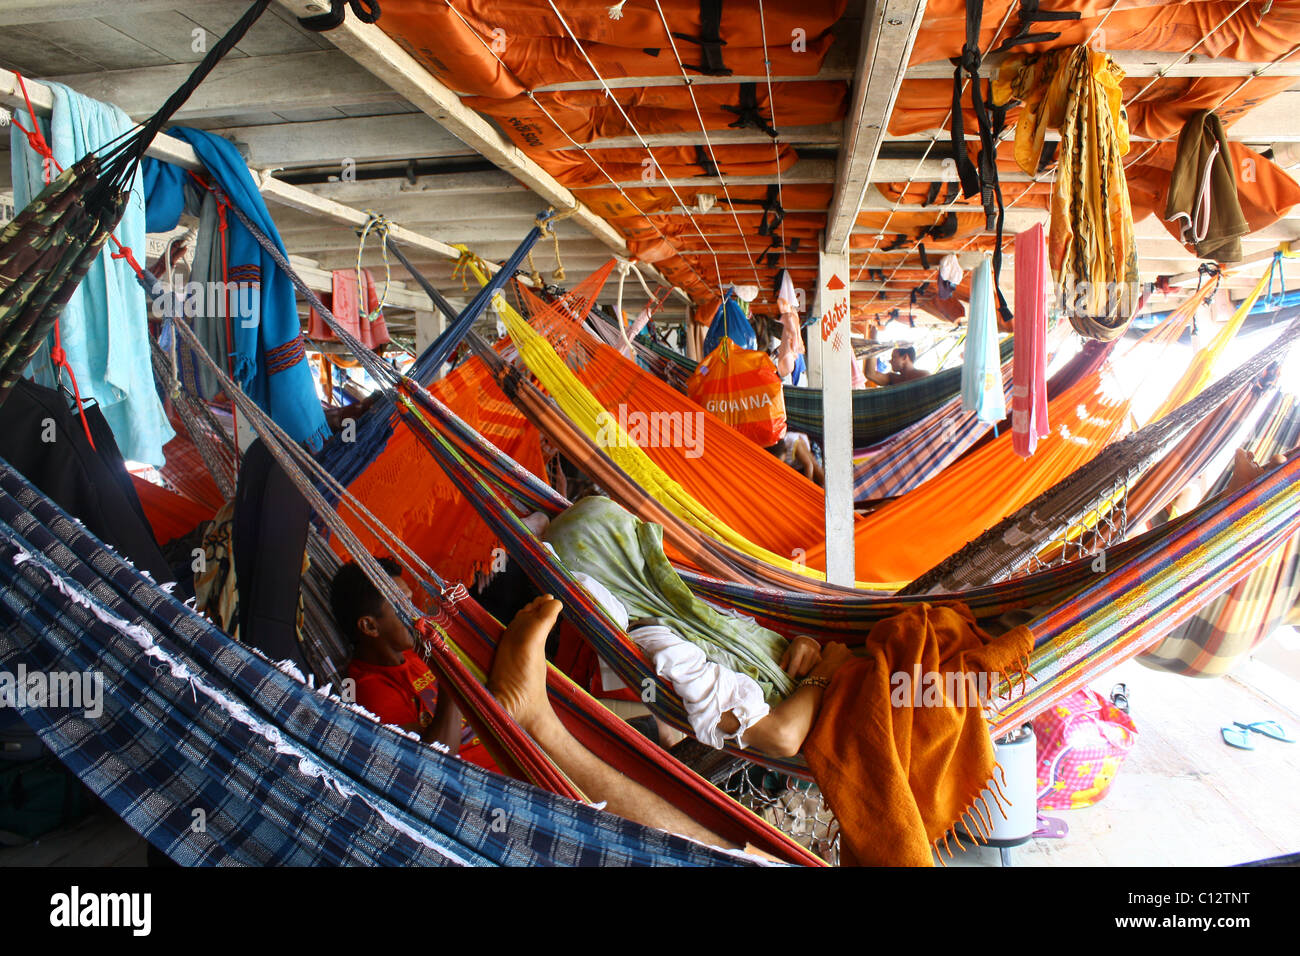 man sleeping on a hammock   traveling through the amazon river on a crowded boat   amazon ferry boat stock photos  u0026 amazon ferry boat stock images      rh   alamy